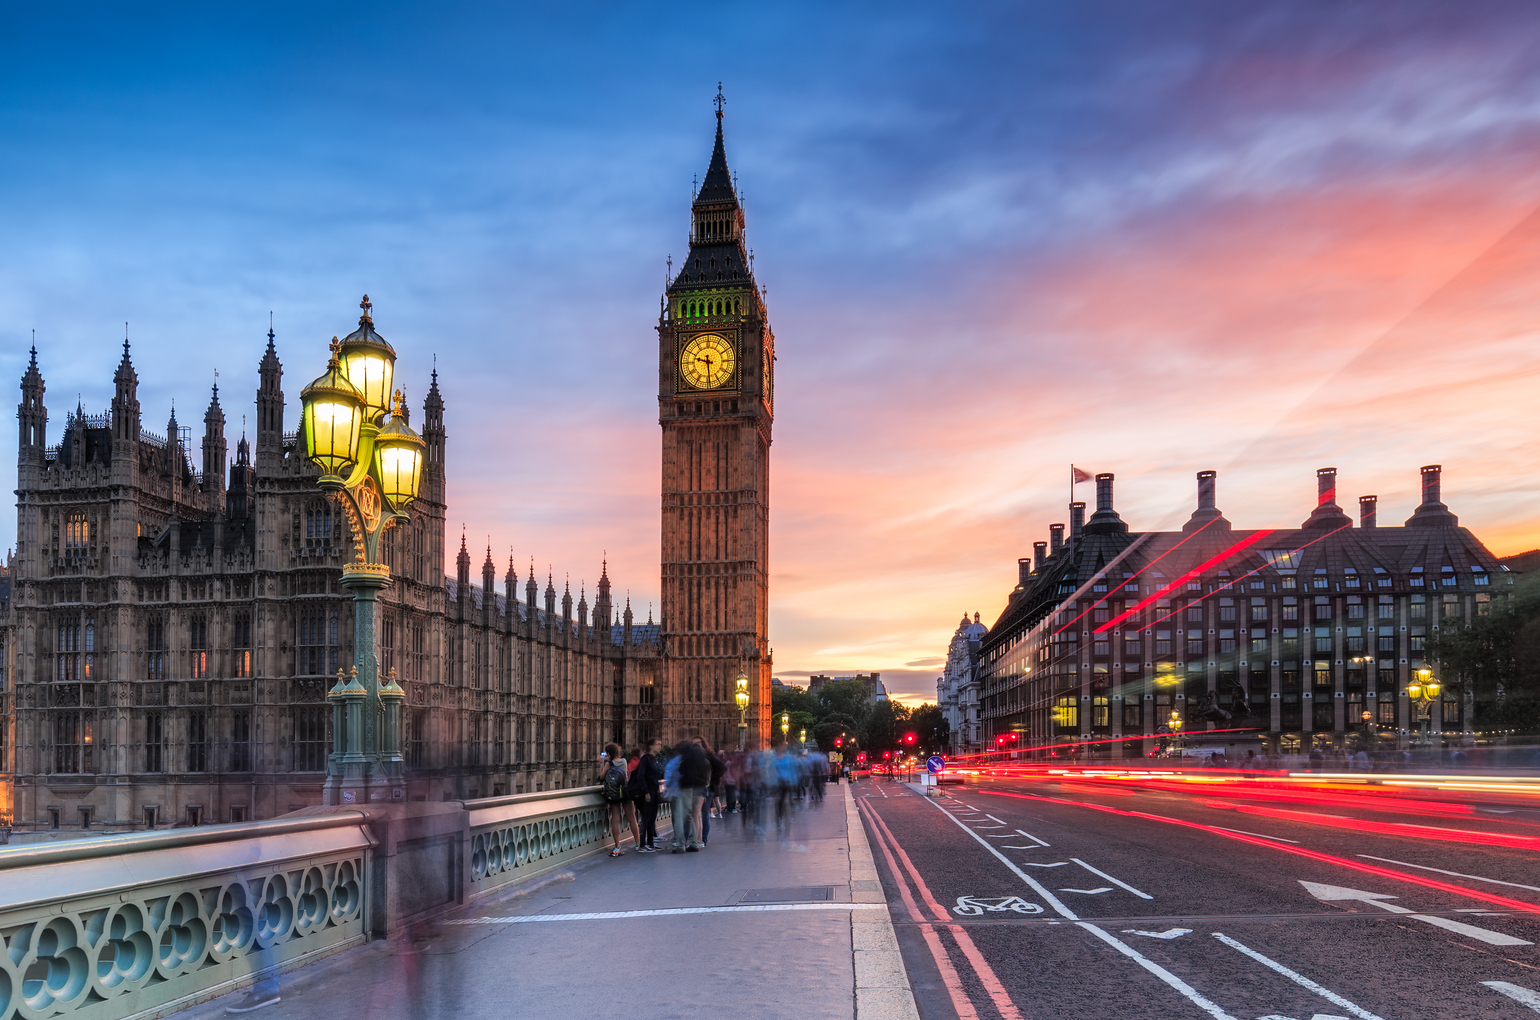 Big Ben And Westminster In London At Sunset